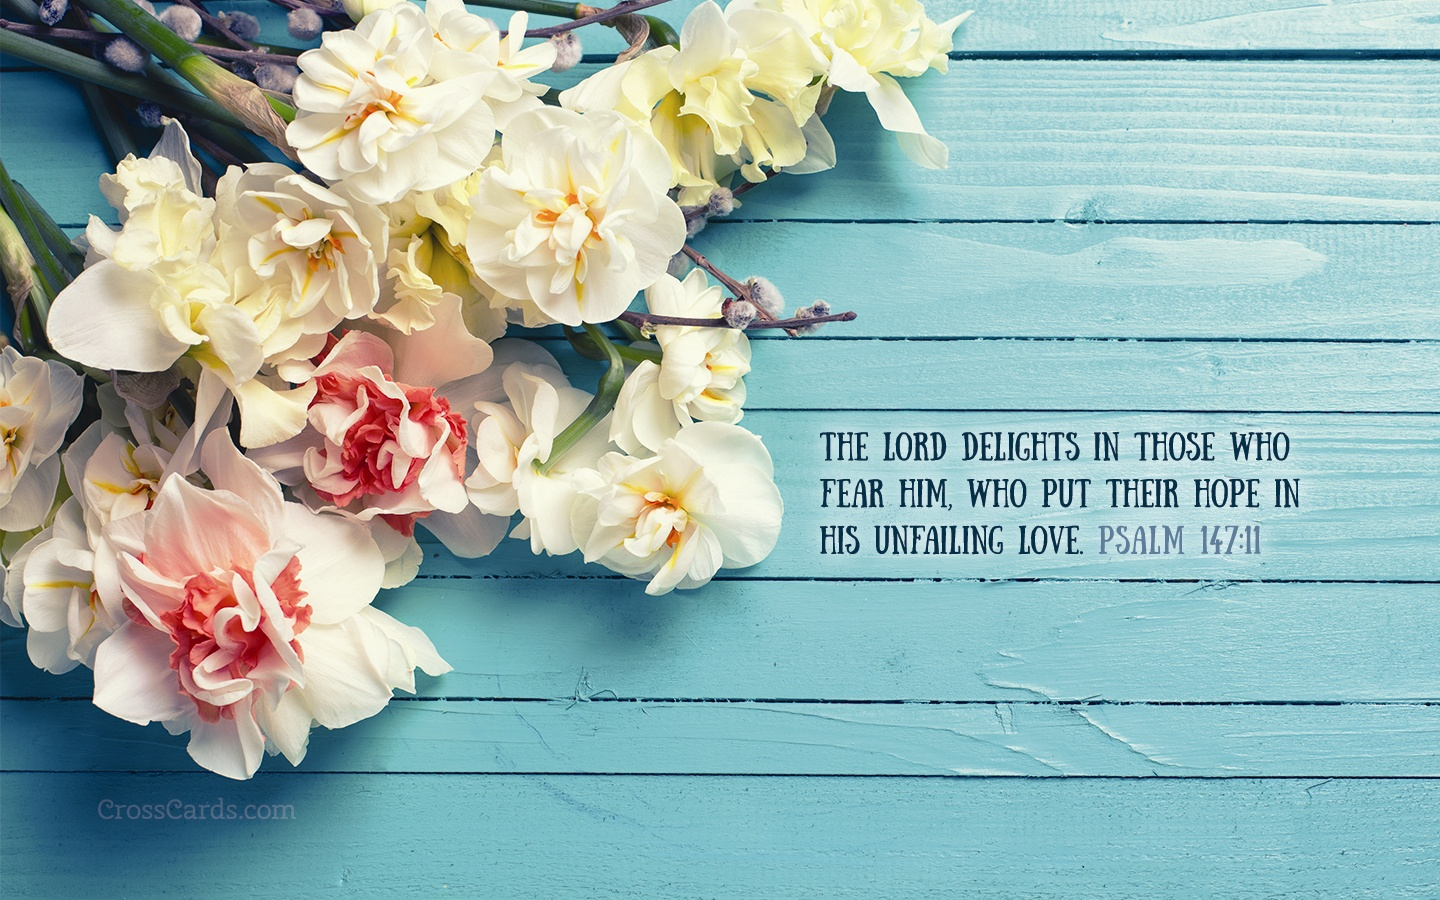 Psalm 14711 Wallpaper   Flowers Desktop Backgrounds 1440x900